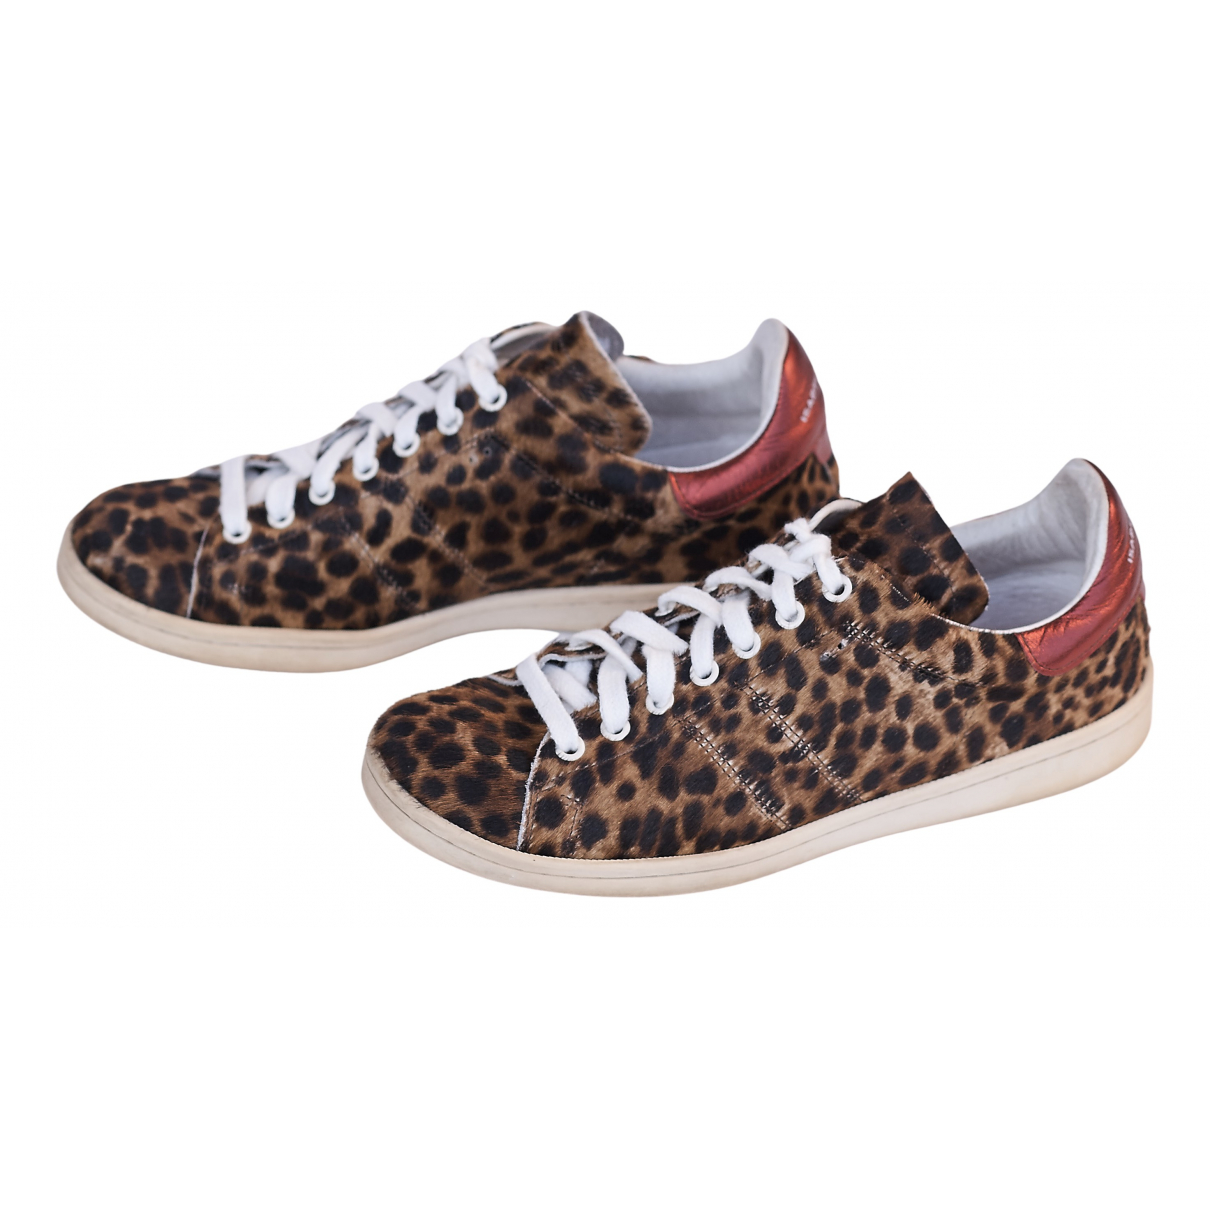 Isabel Marant Bart Camel Pony-style calfskin Trainers for Women 40 EU